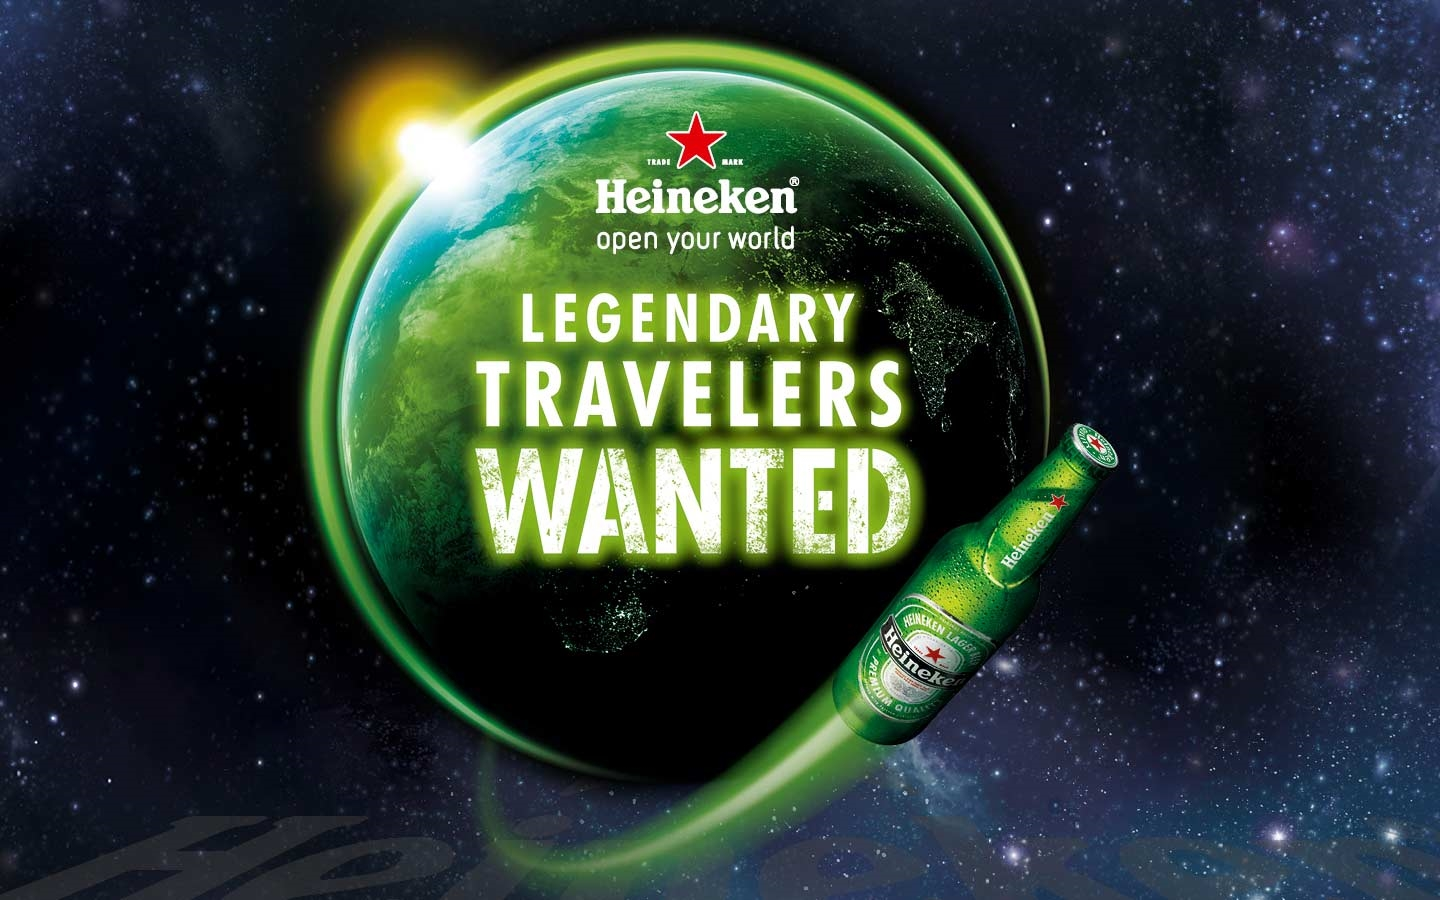 Legendary Travellers Wanted